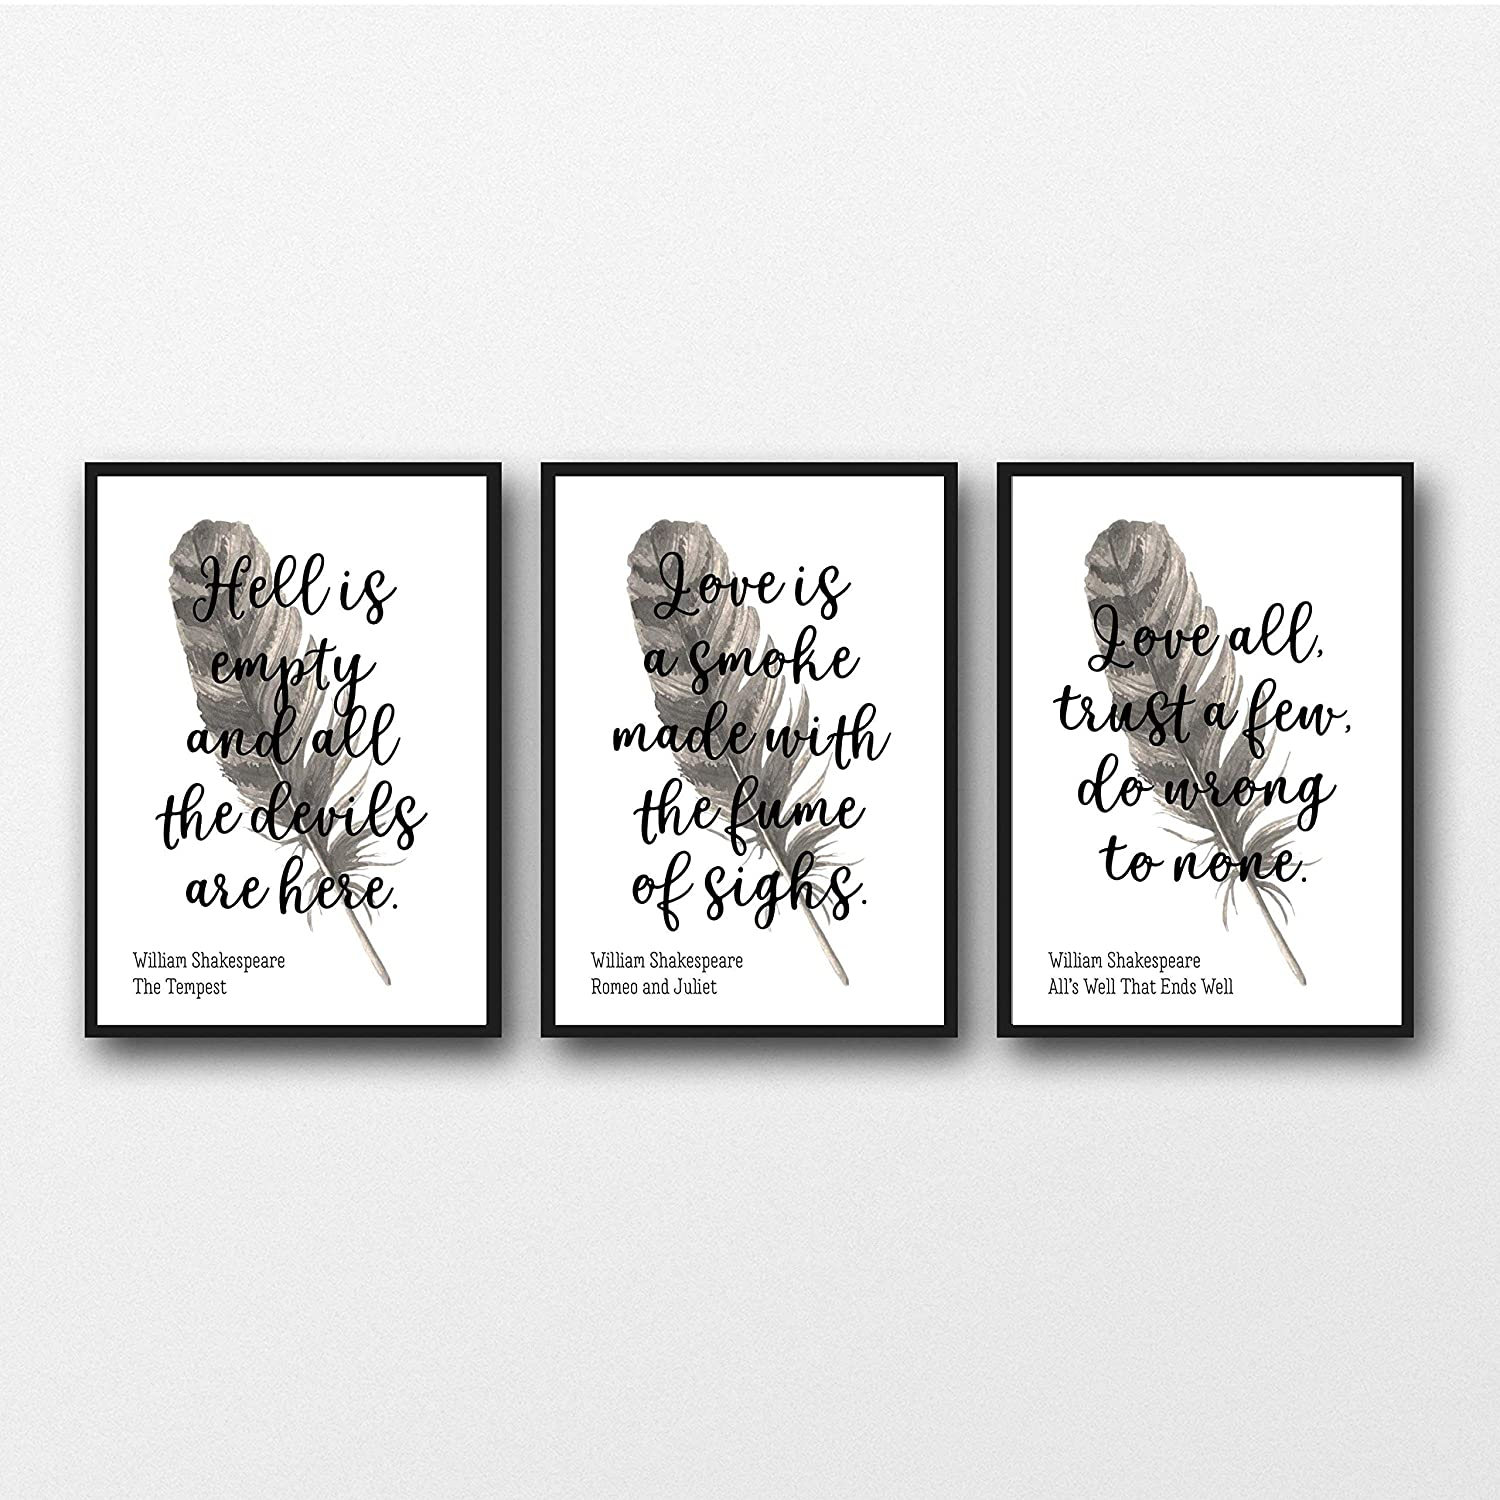 Sin Marco Unframed Prints Set of 3 William Shakespeare Quotes